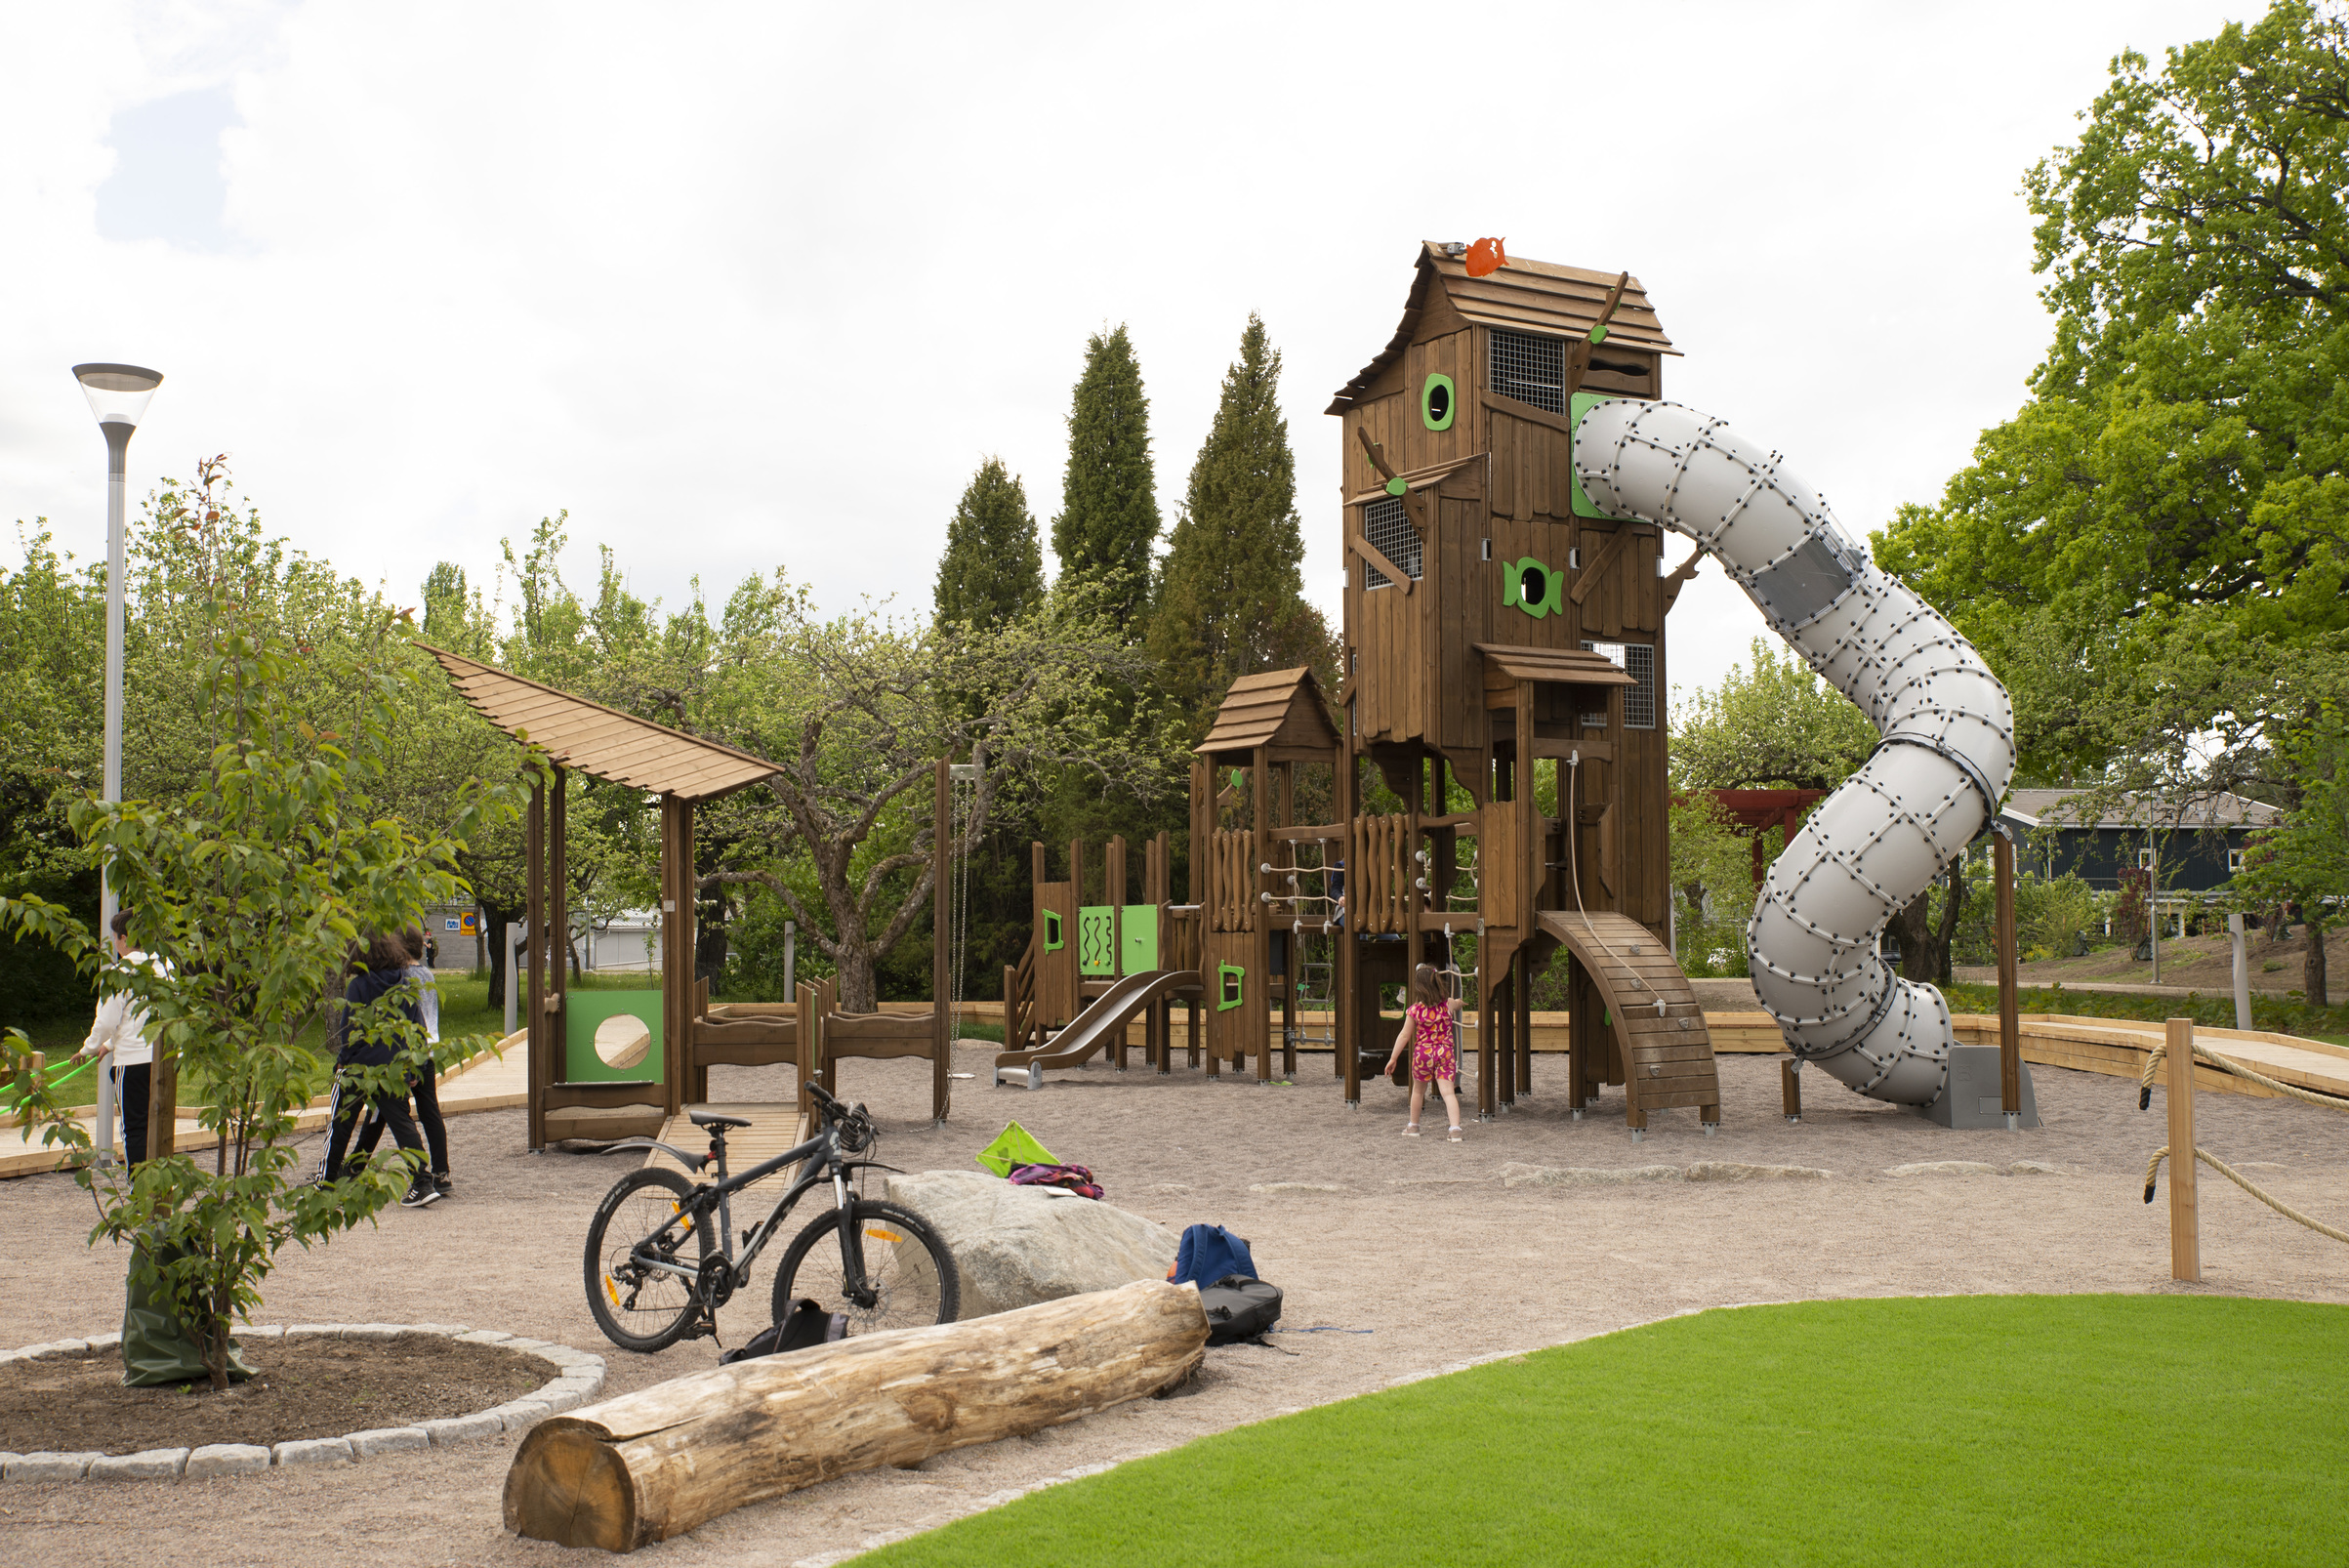 playground activity tower with slide